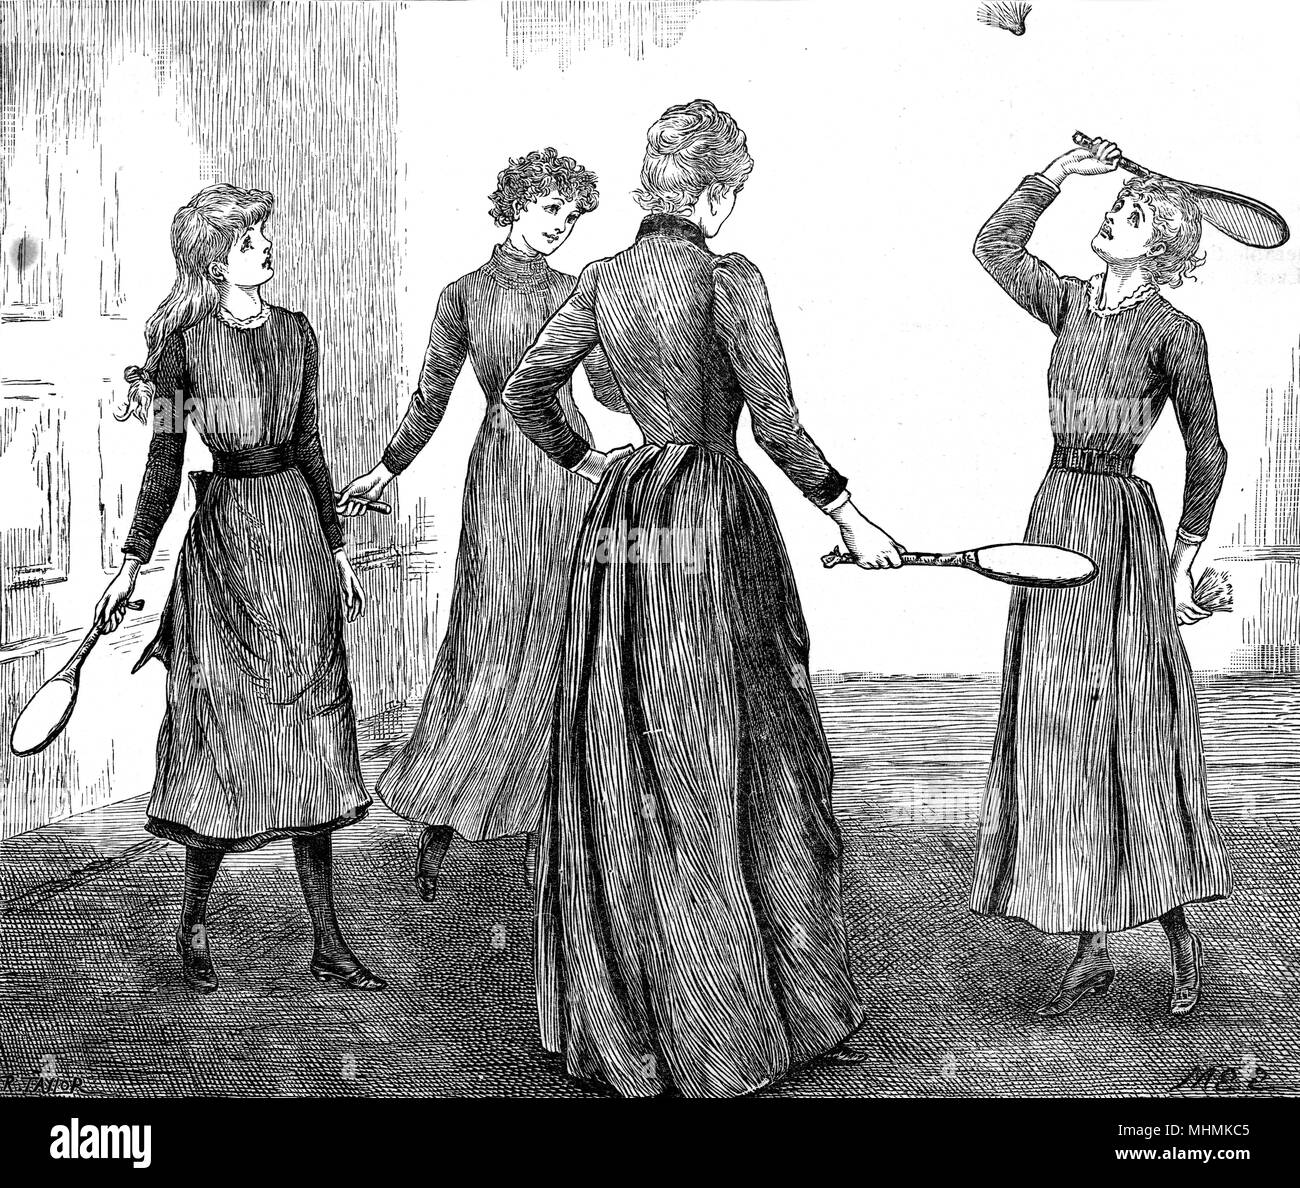 Four ladies enjoy a game of battledore and shuttlecock indoors.       Date: 1891 - Stock Image